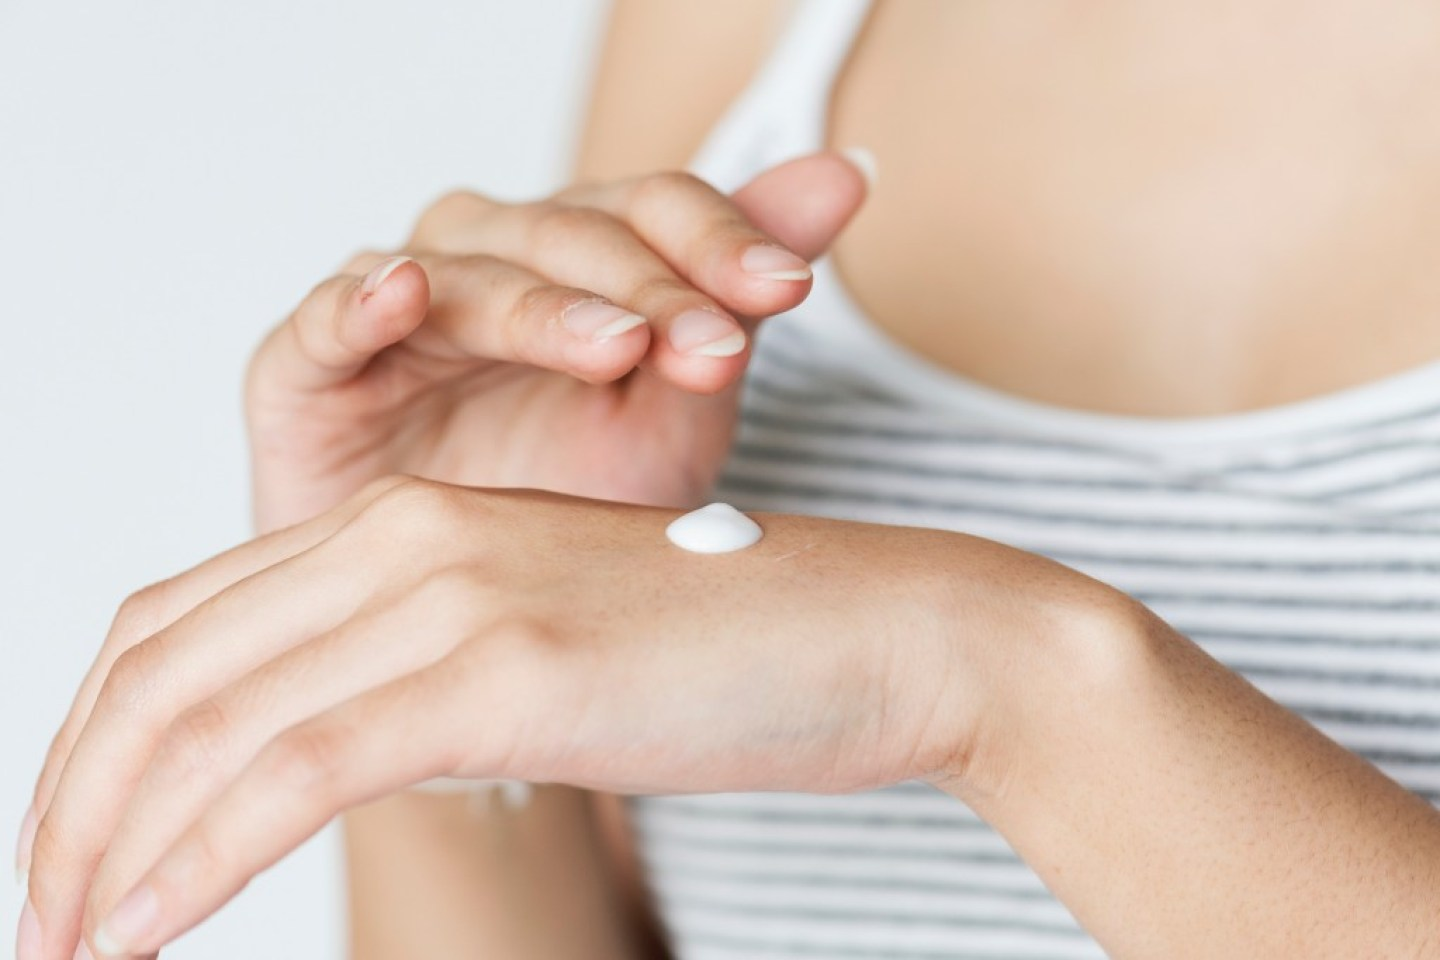 woman with skin cream on hand